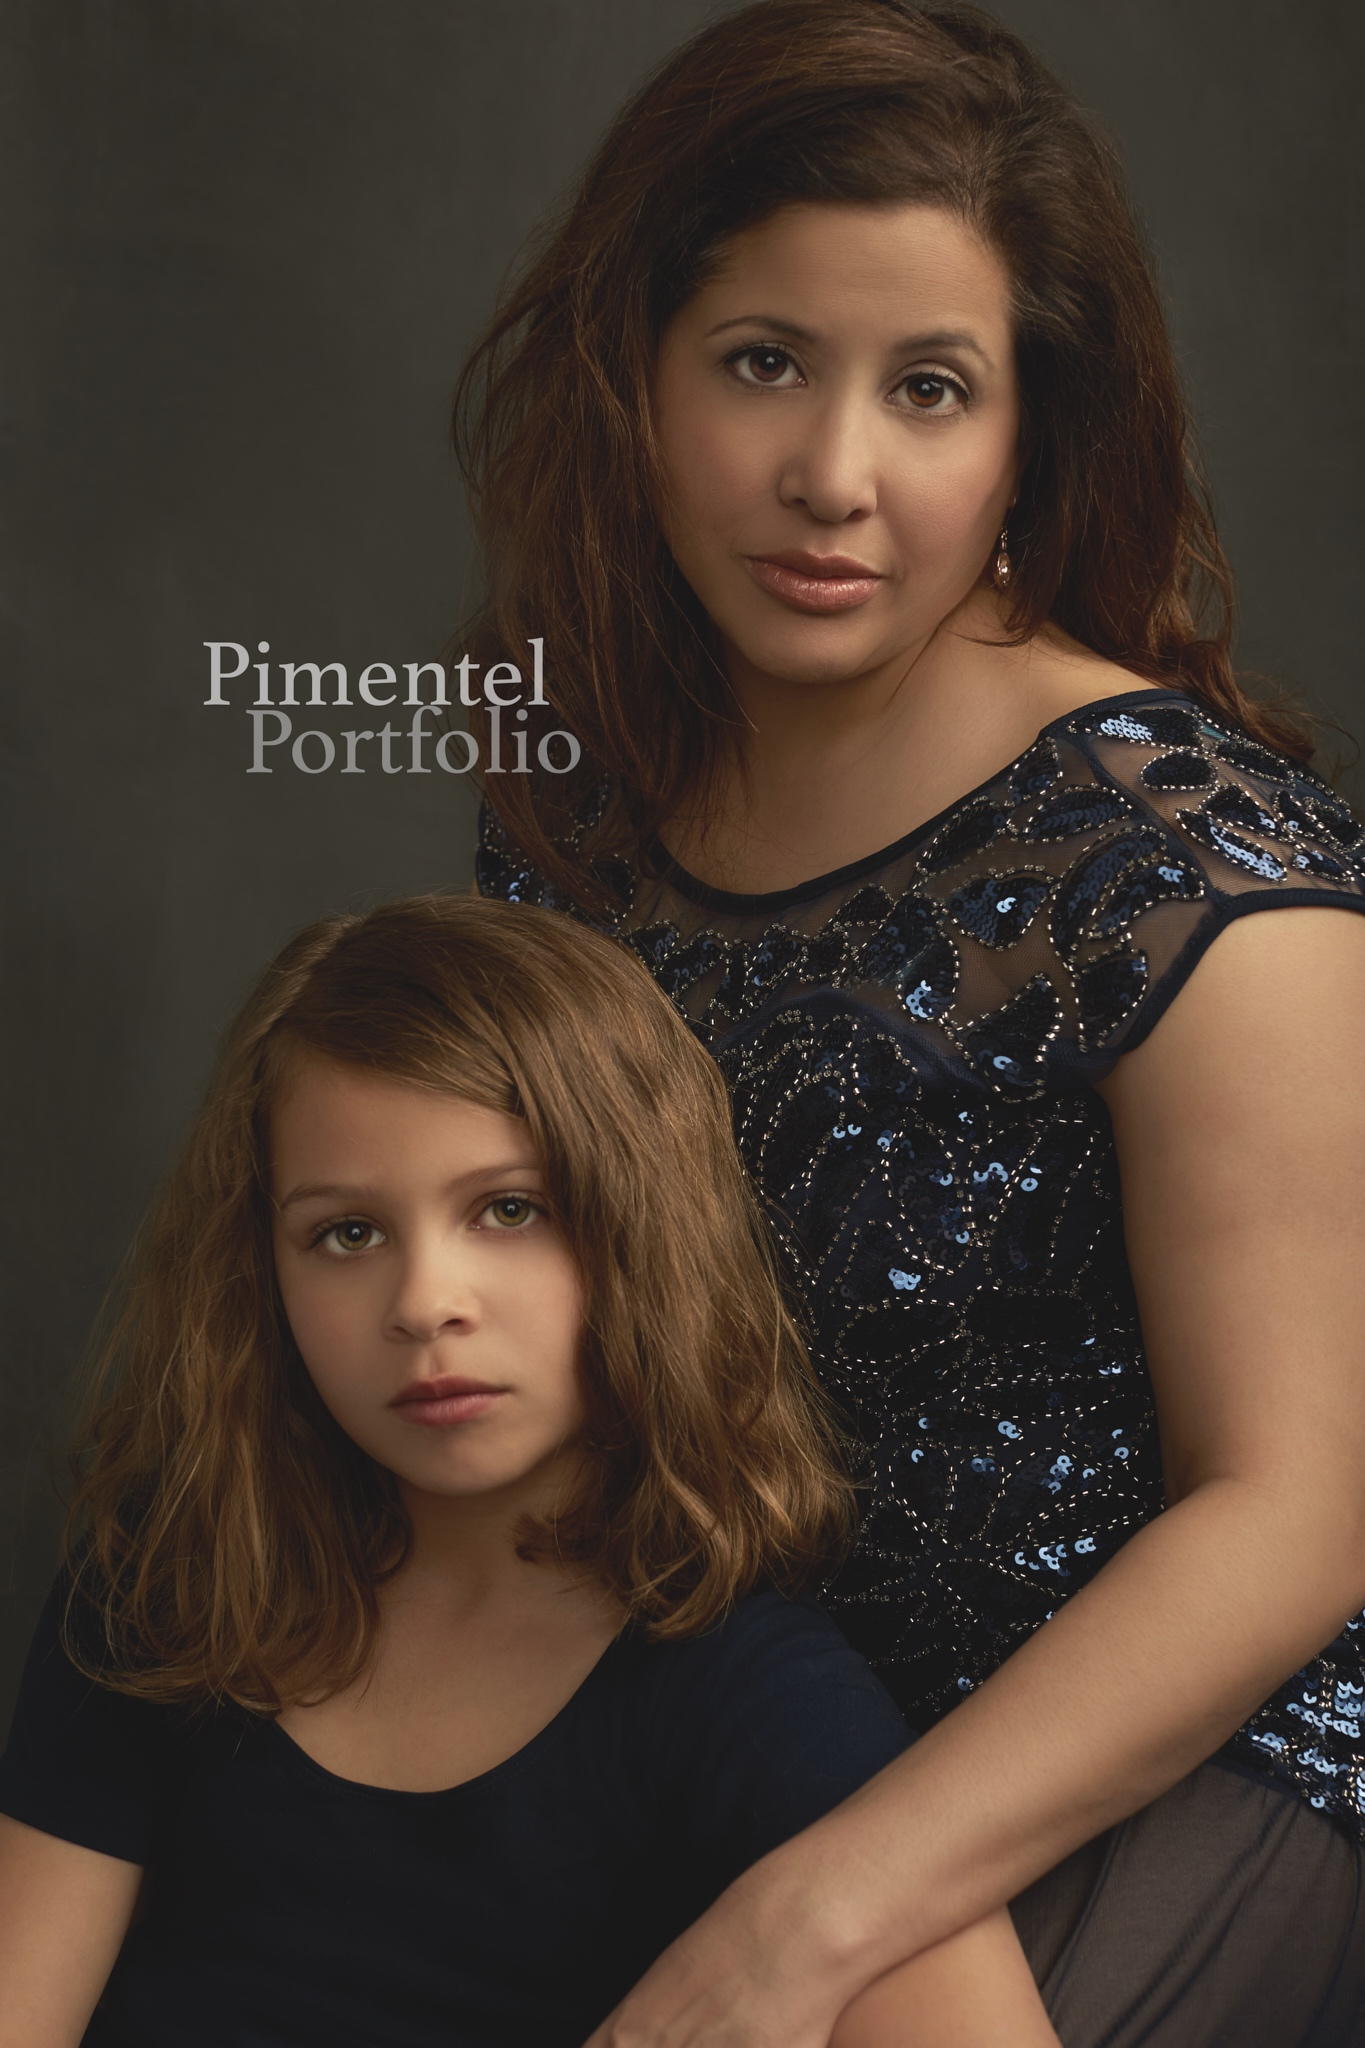 Mother Daughter Portrait captures the moment of a lifetime. Image by Pimentel Portfolio LLC